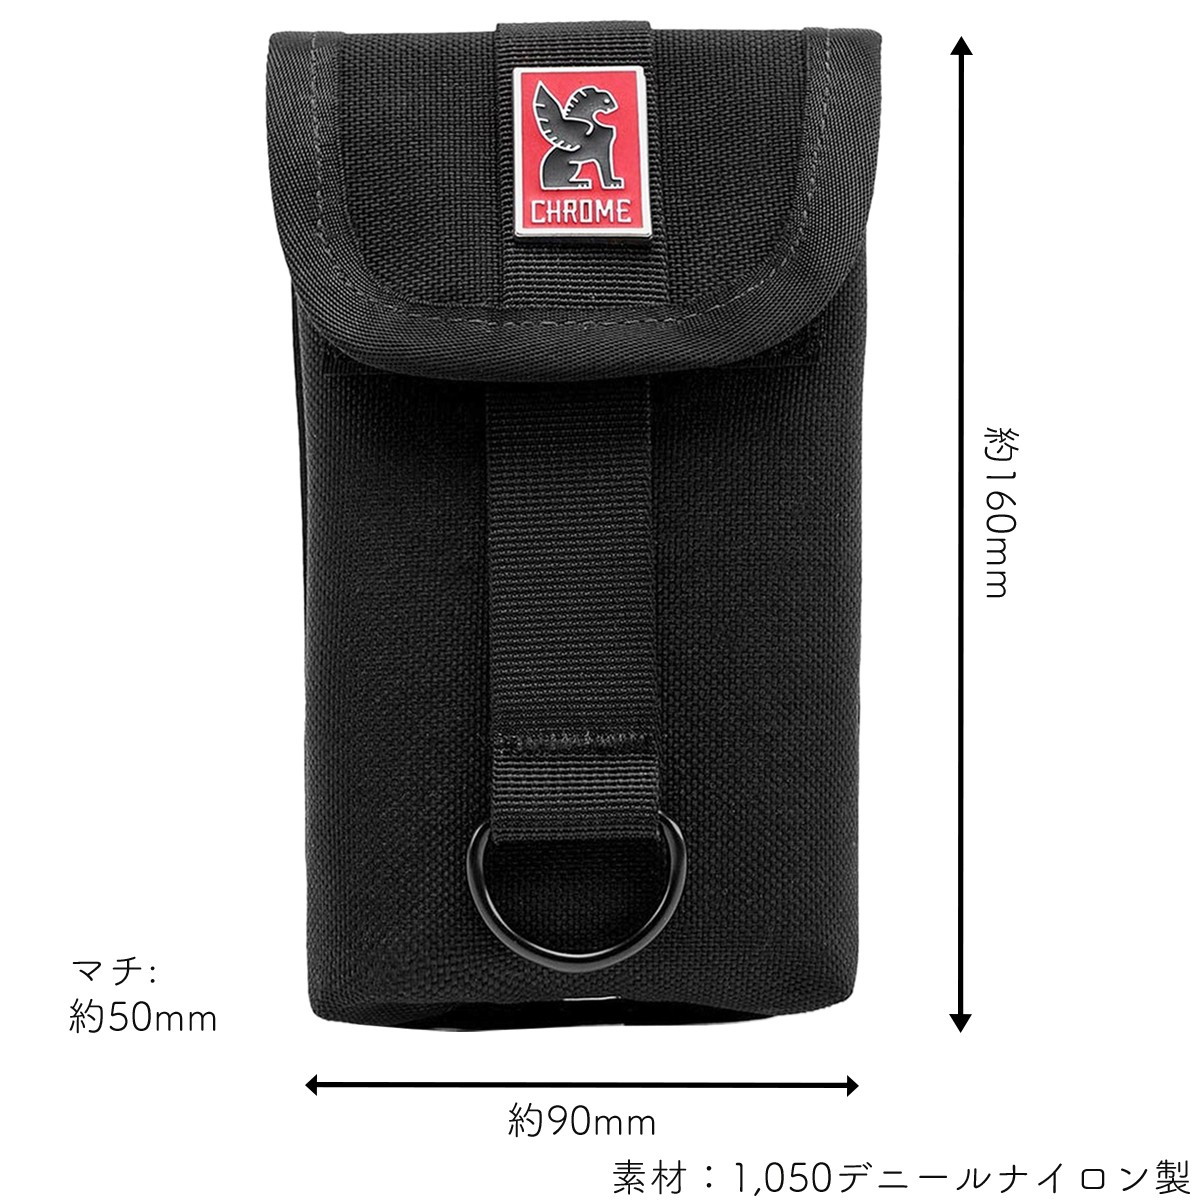 CHROME PRO ACCESSORY POUCH